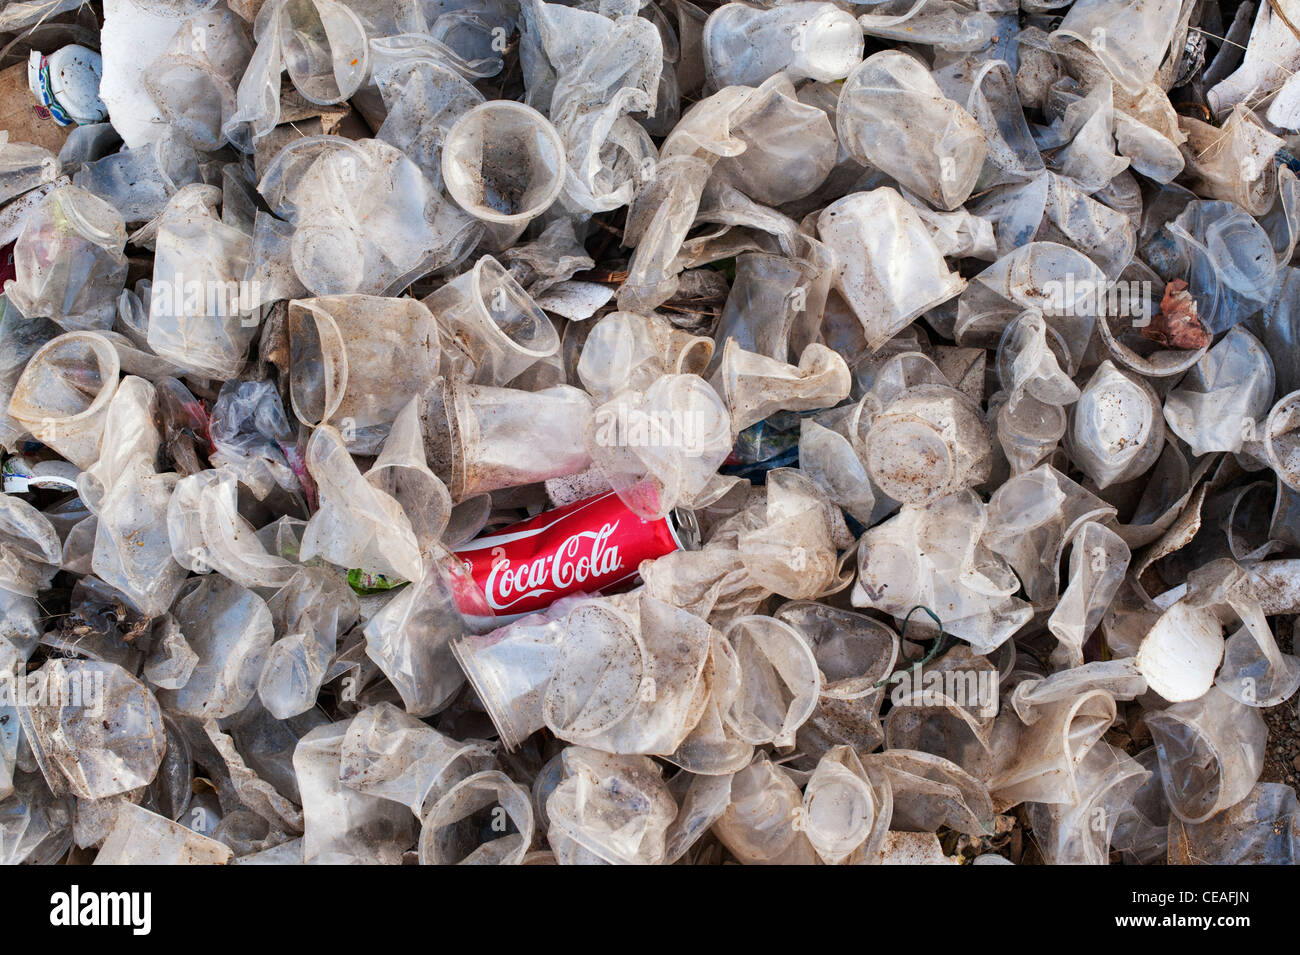 Discarded coca cola drinks can and plastic tea cups in the Indian countryside - Stock Image